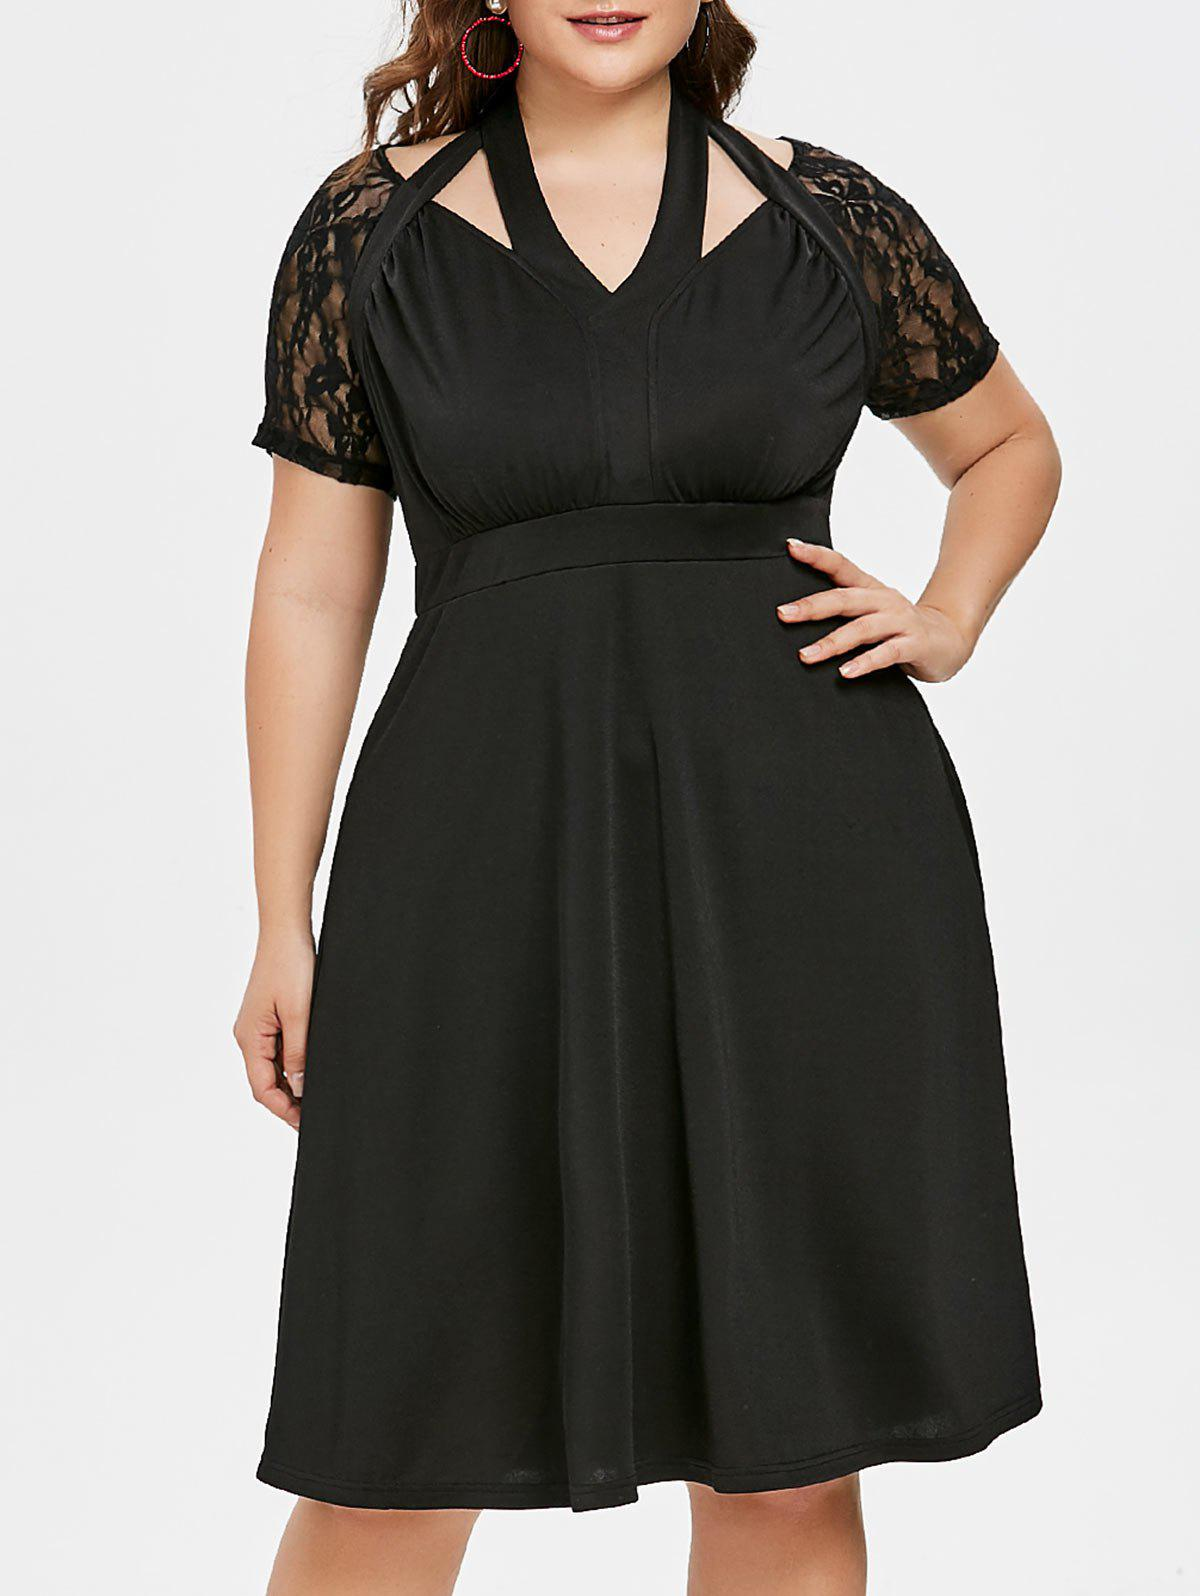 New Plus Size Cutout Lace Trim Halter Dress